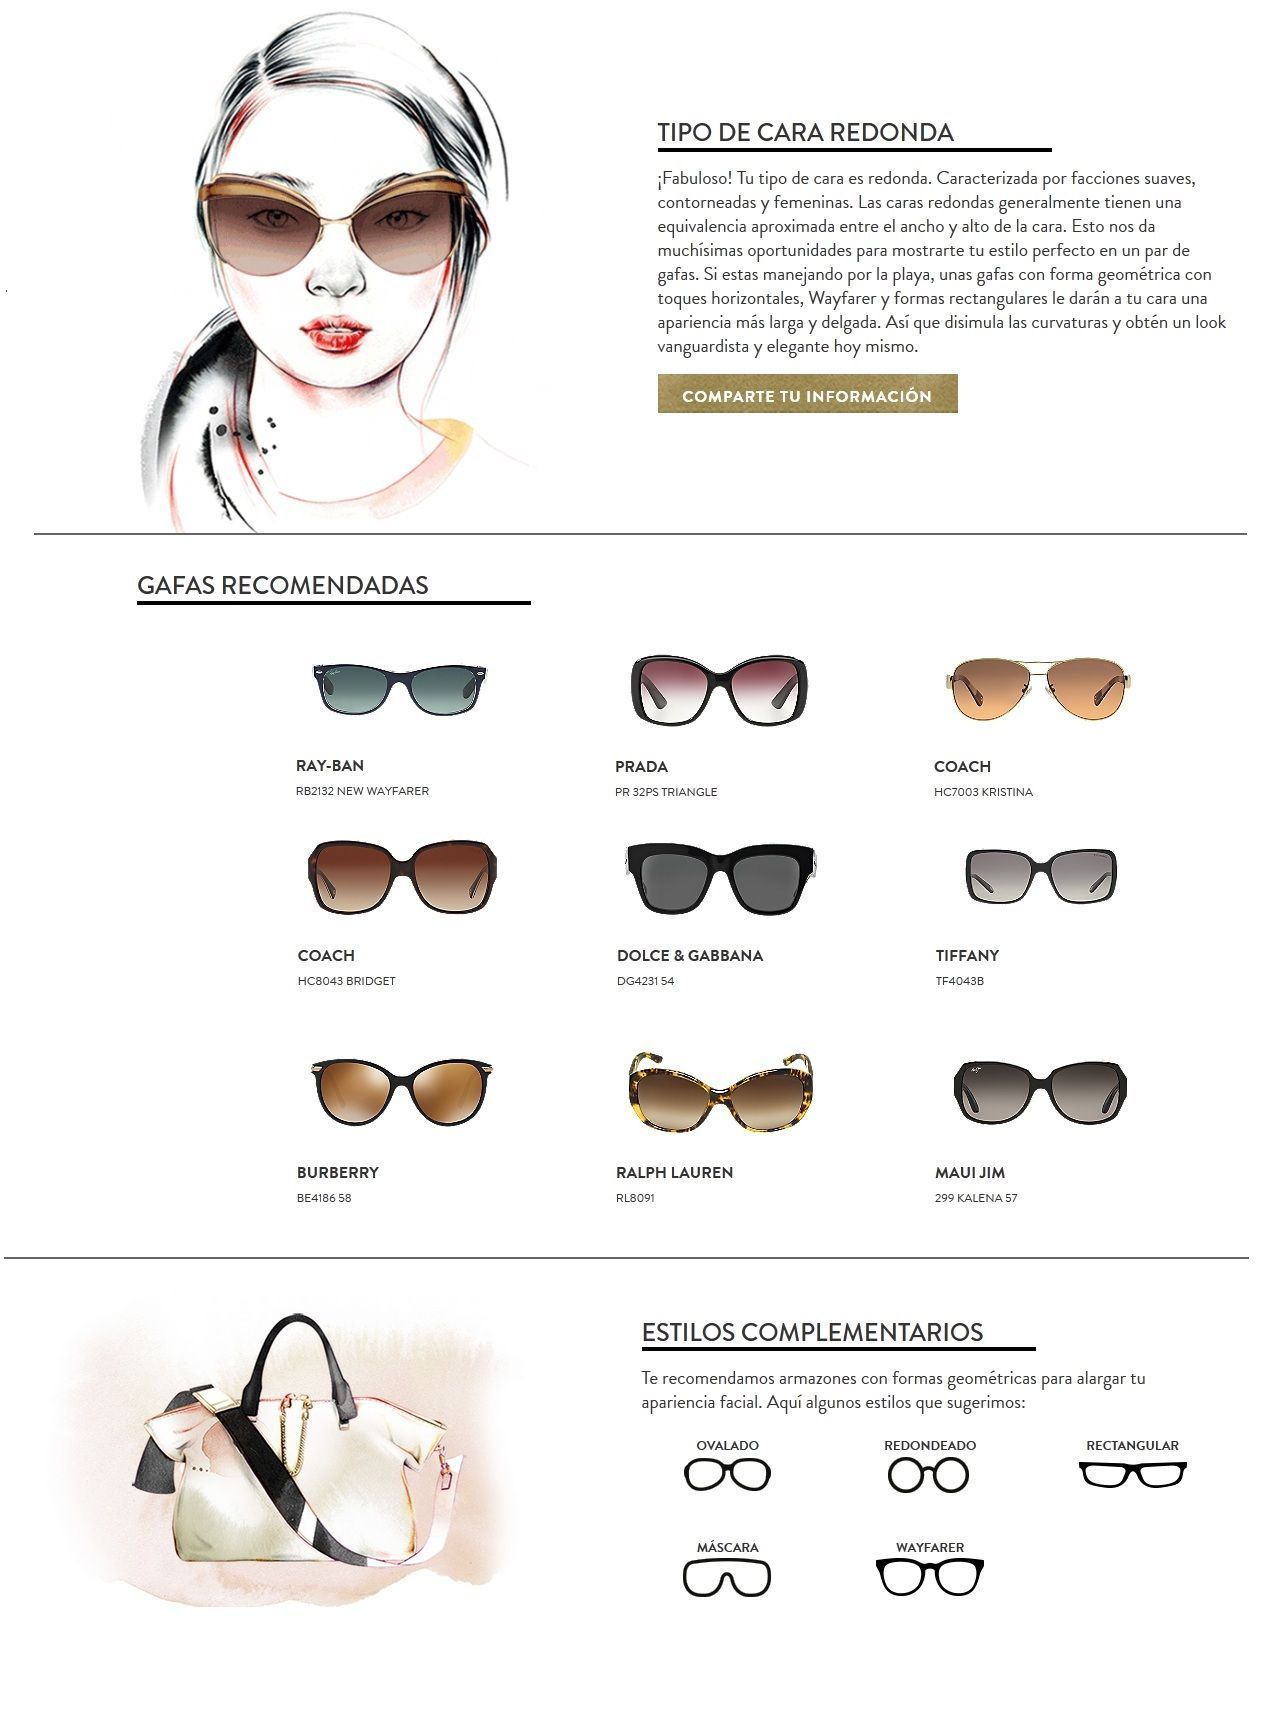 Gafas Según Tipo Rostro Round Face Sunglasses Glasses Frames Trendy Face Shapes